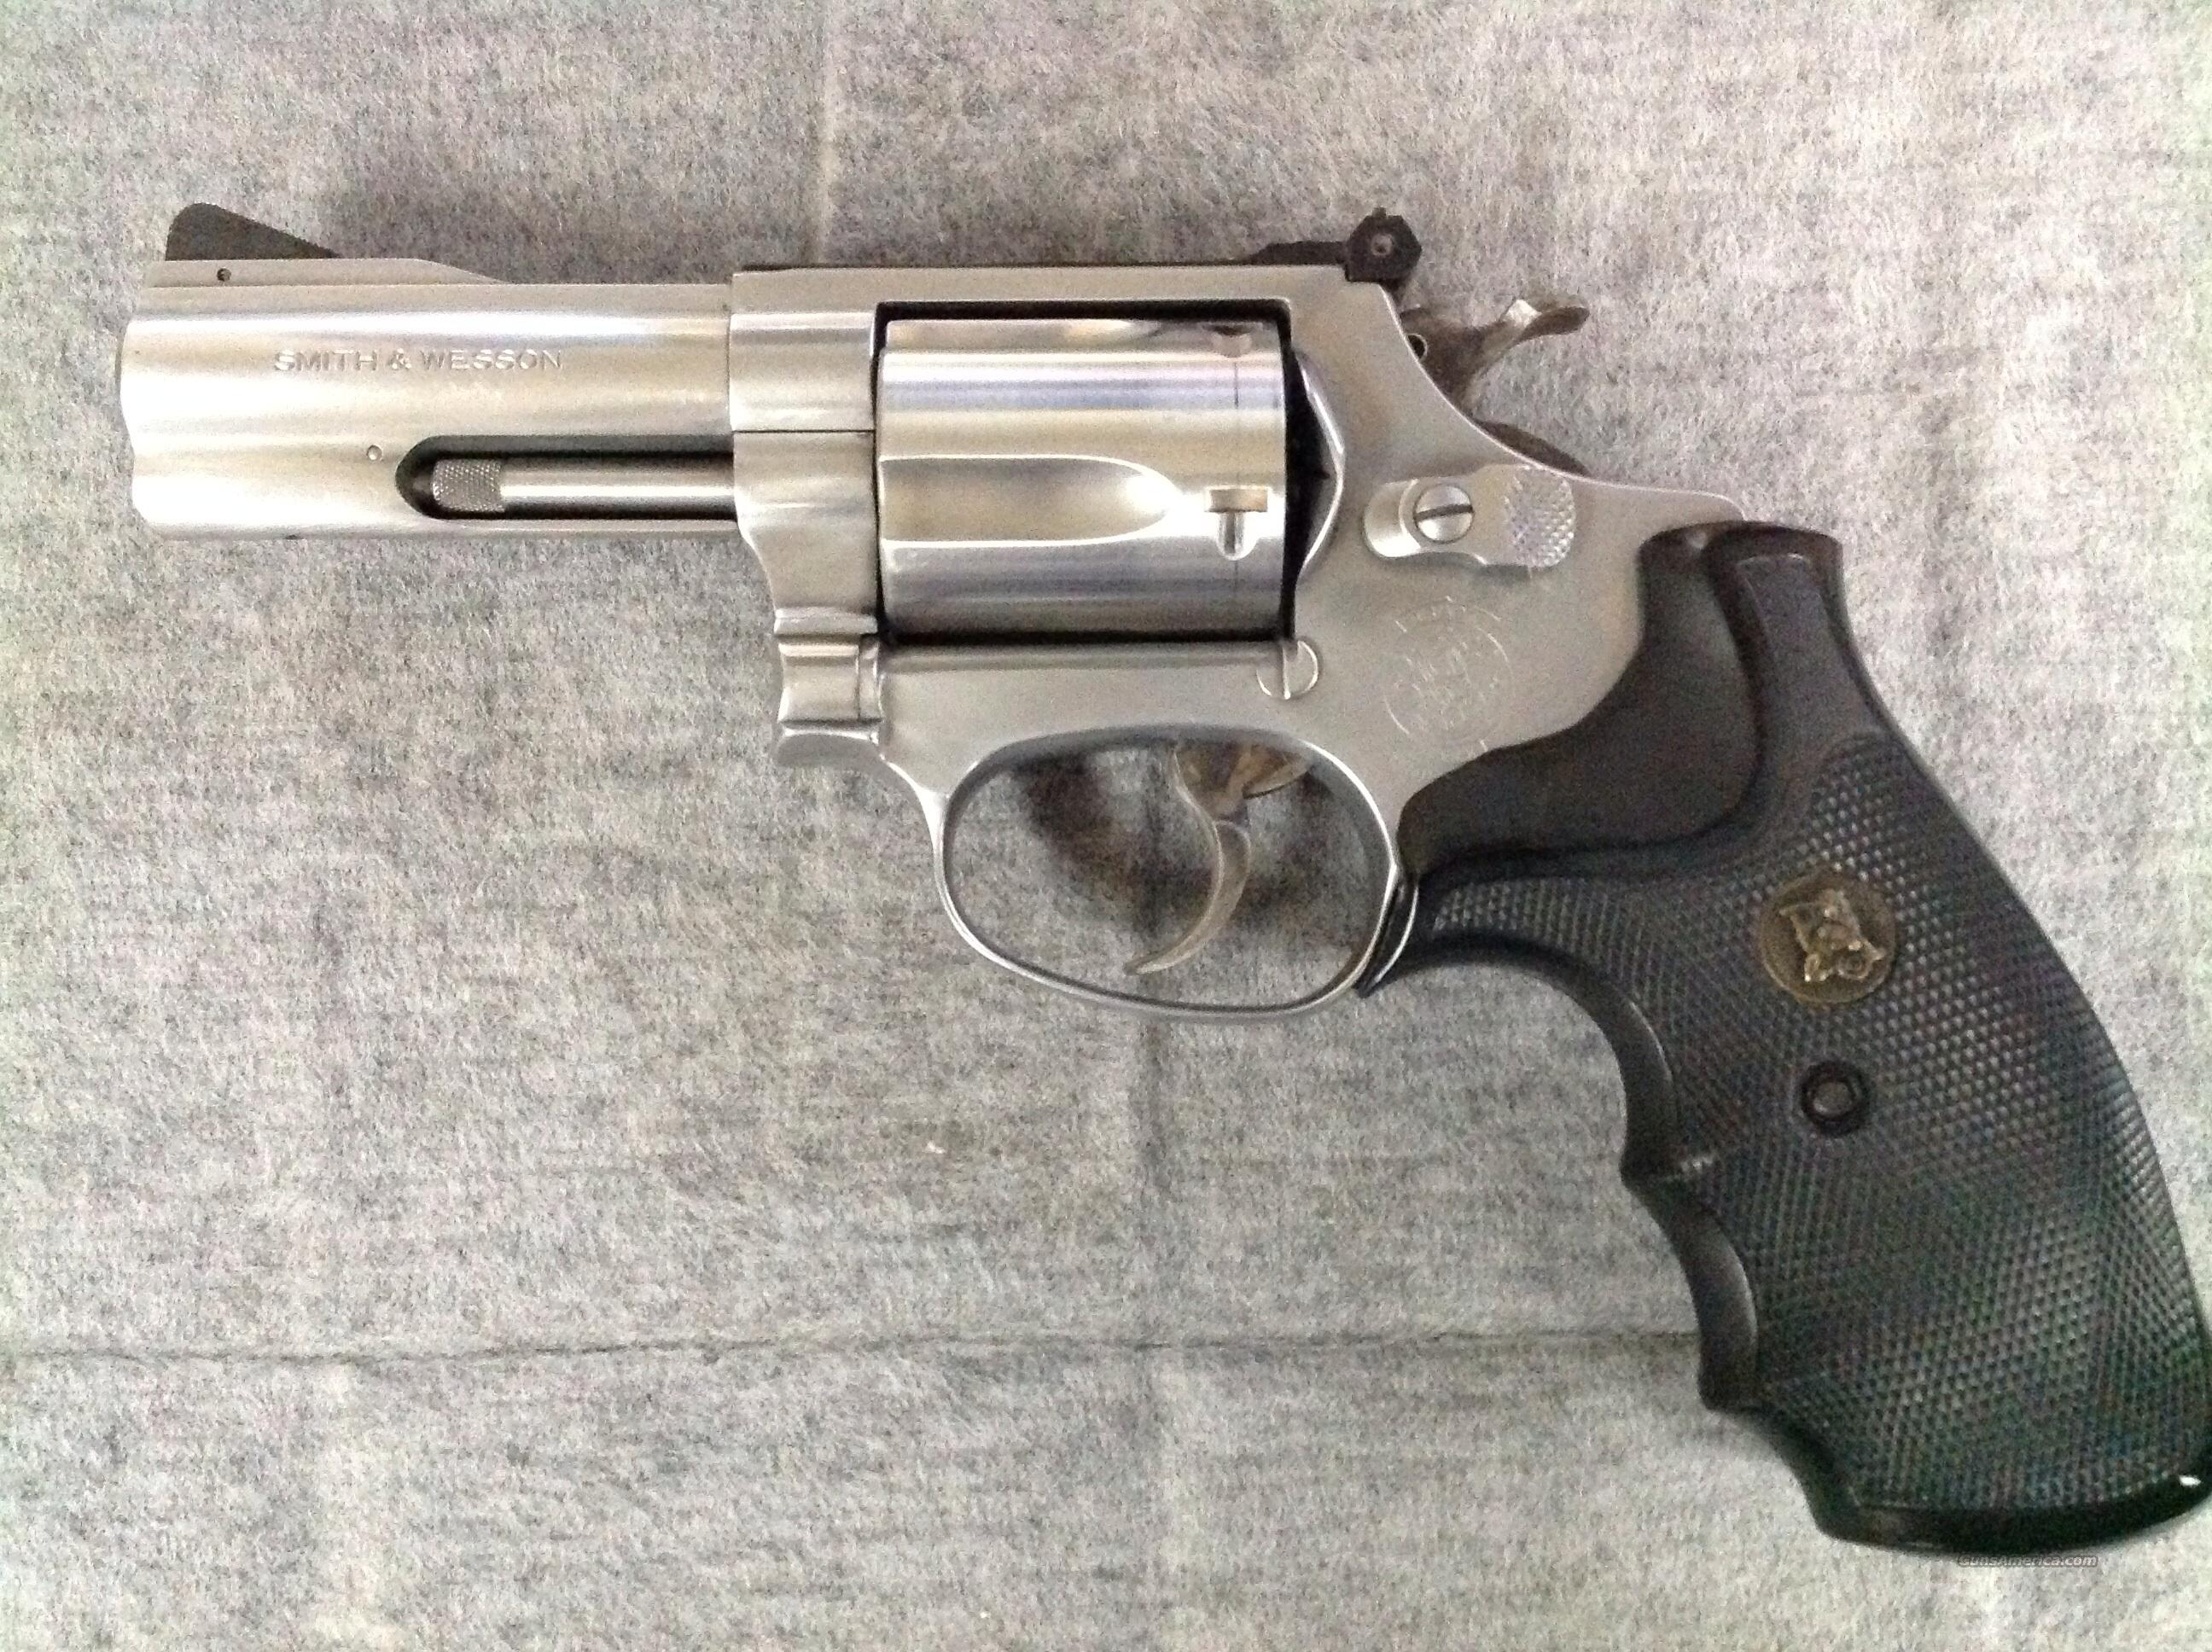 Smith & Wesson 60-4 38spl  Guns > Pistols > Smith & Wesson Revolvers > Full Frame Revolver